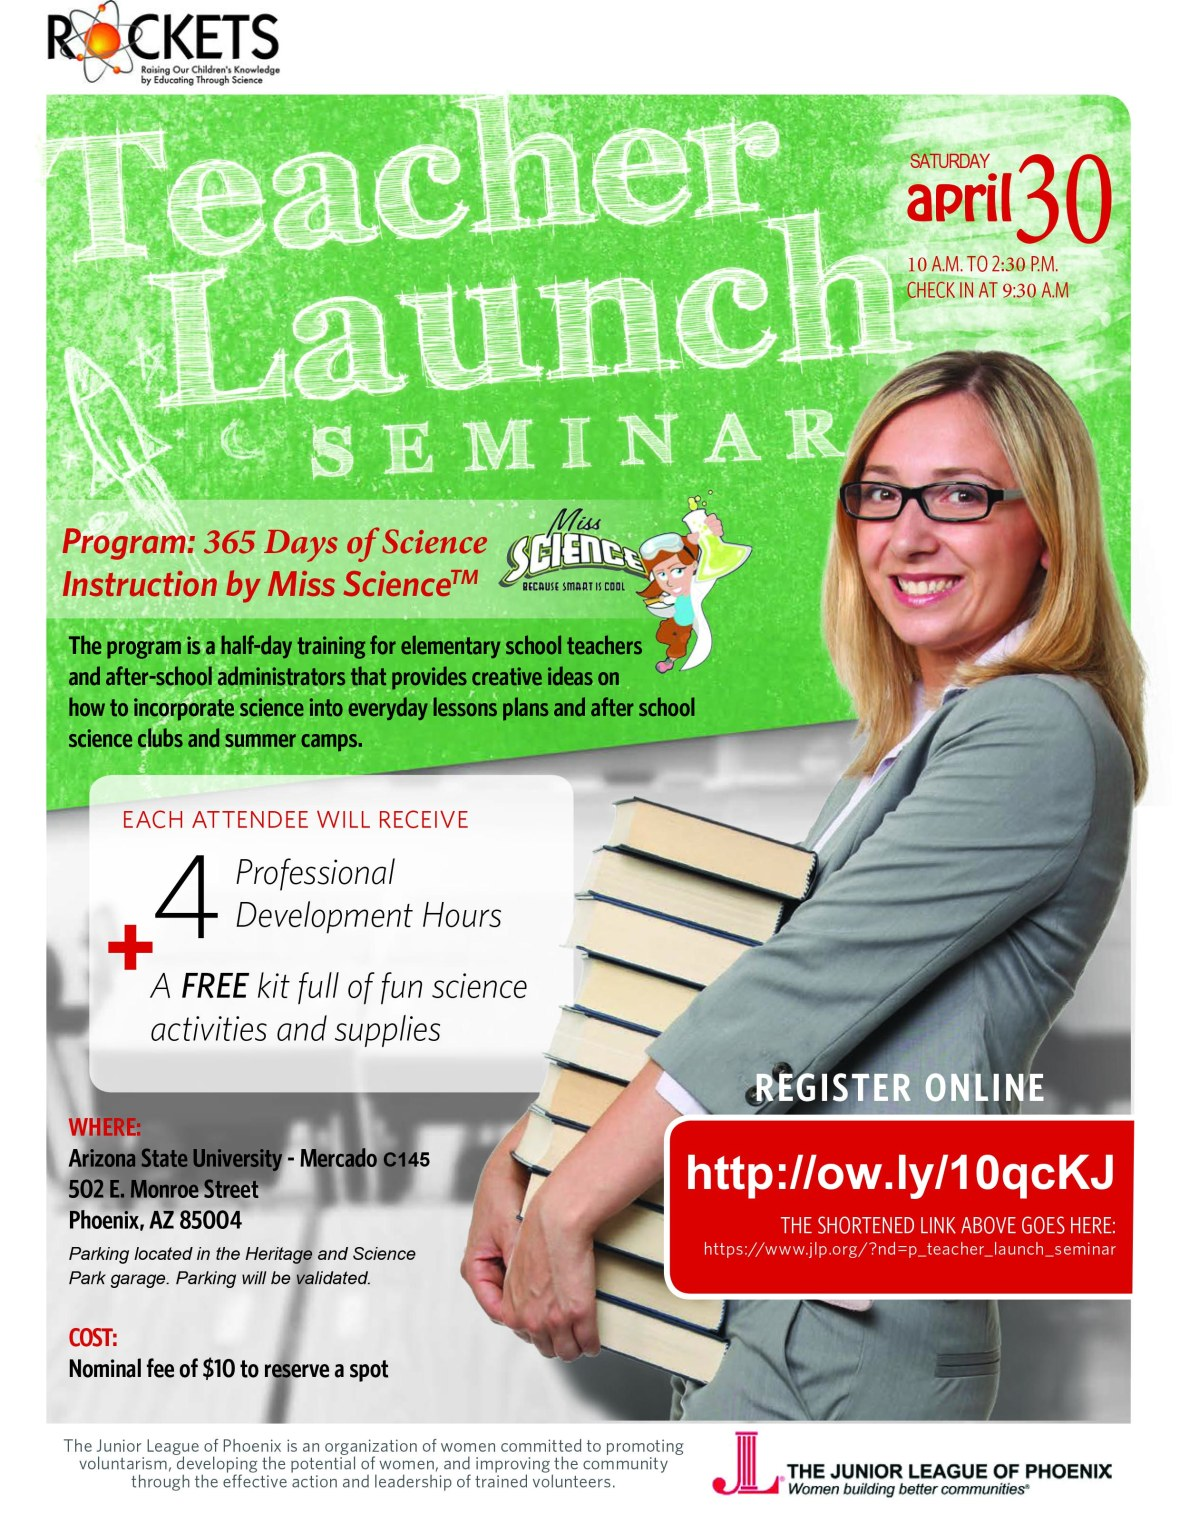 JLP-ROCKETS-Teacher-Launch-Seminar-Info-----April-30-2016